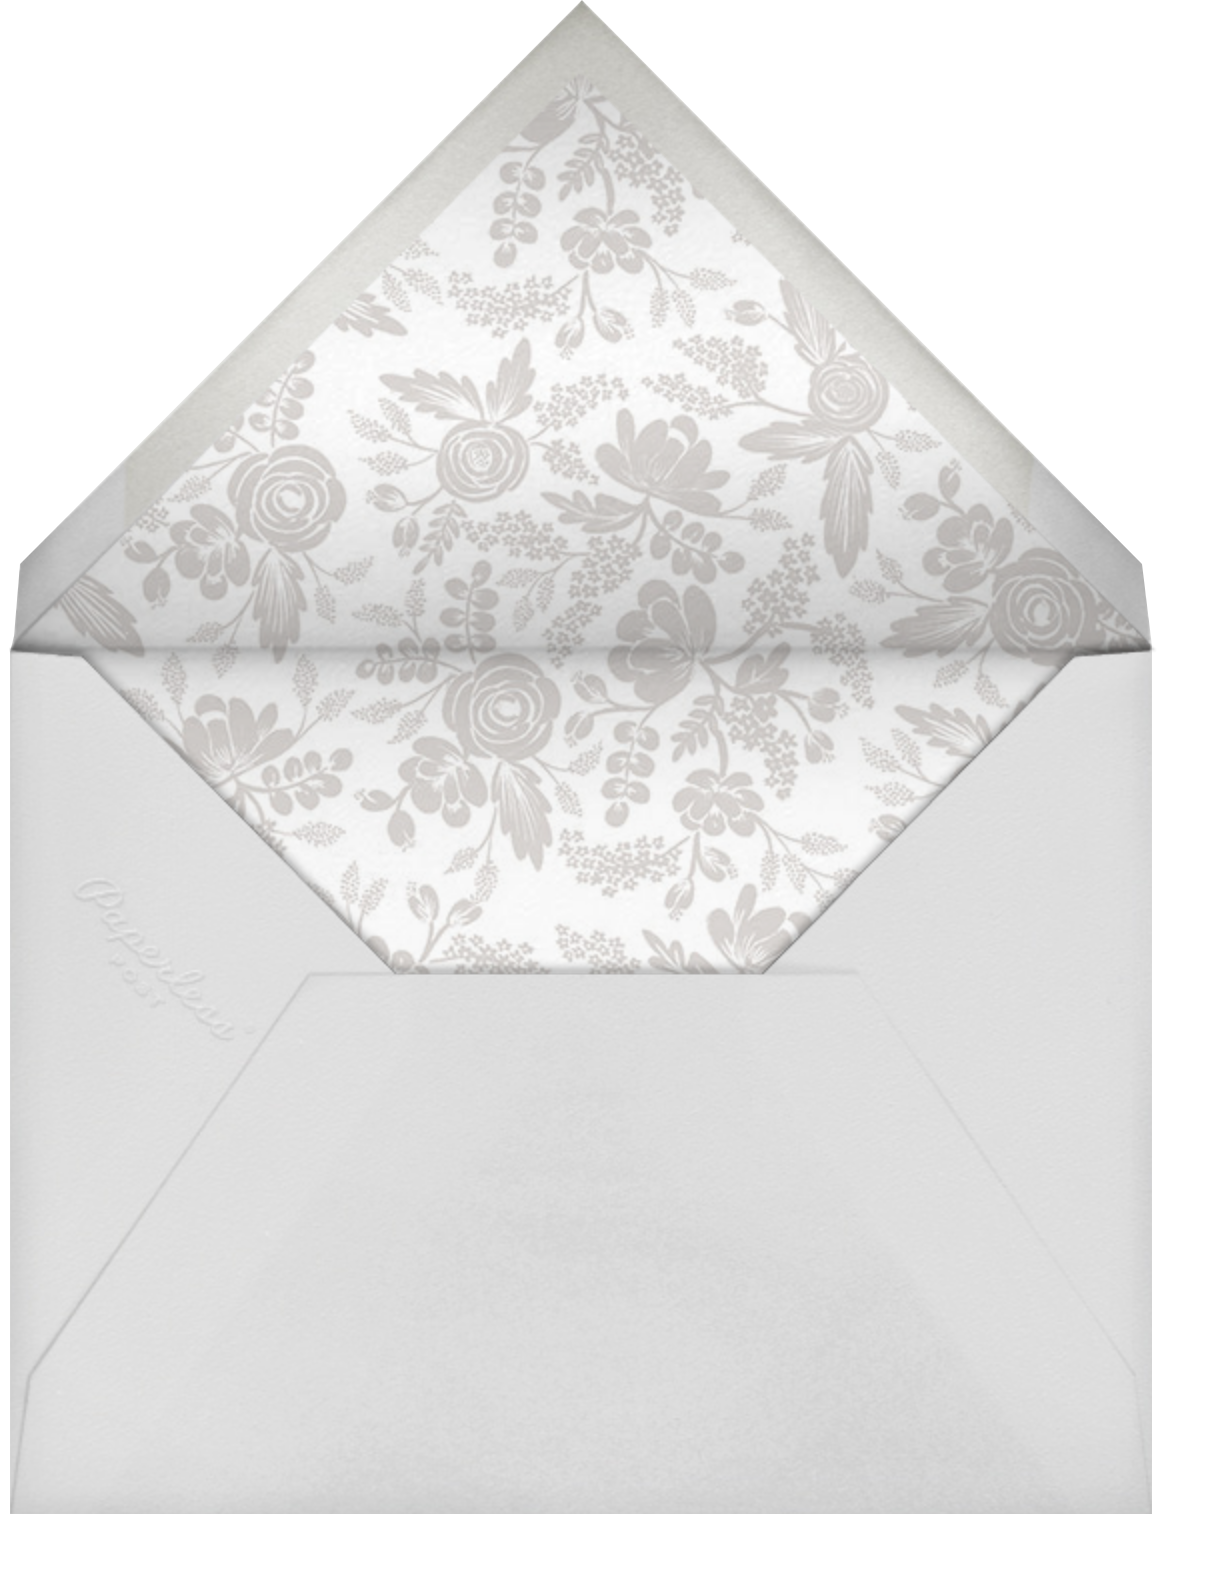 Heather and Lace (Tall Frame) - Gold/Merinuge - Rifle Paper Co. - Bridal shower - envelope back